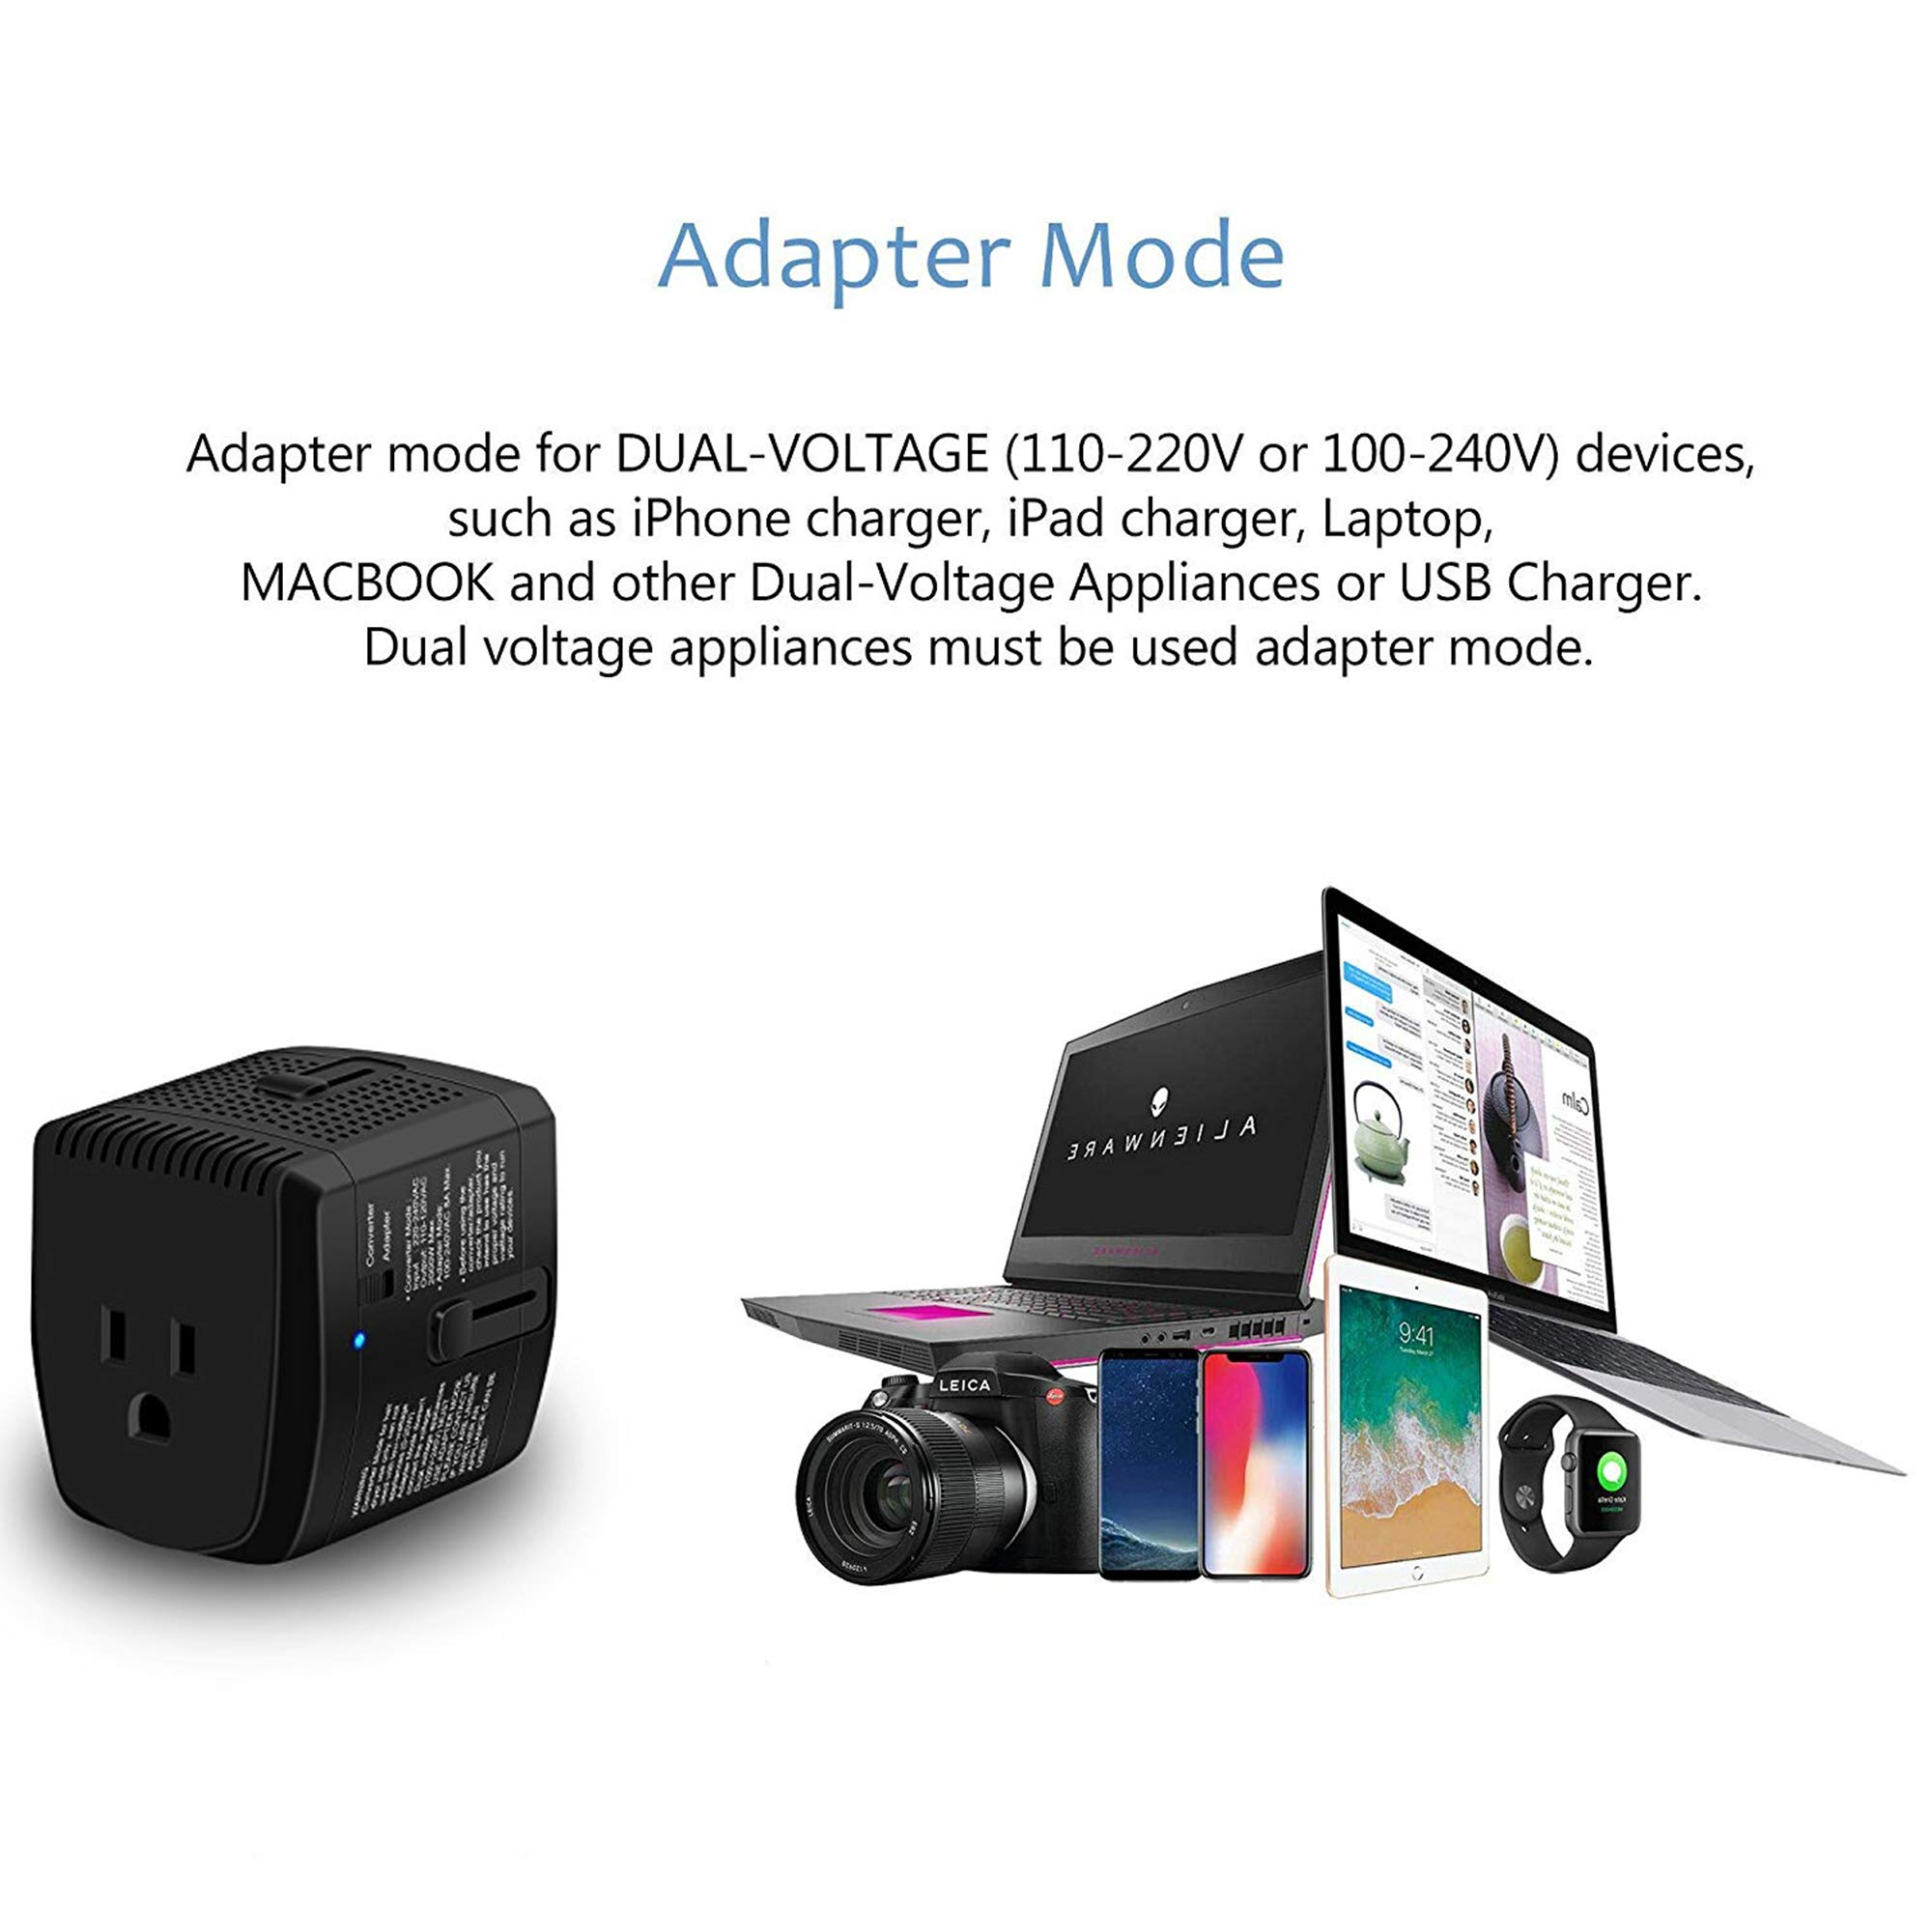 2000W Step Down Voltage Converter 220V to 110V and Universal Travel Plug Adapter Combo for Hair Dryer Steam Iron Cell Phone Laptop MacBook - Plug Adaptor US to Europe, UK, AU, Asia Over 150 Countries by ElecLead (Image #3)